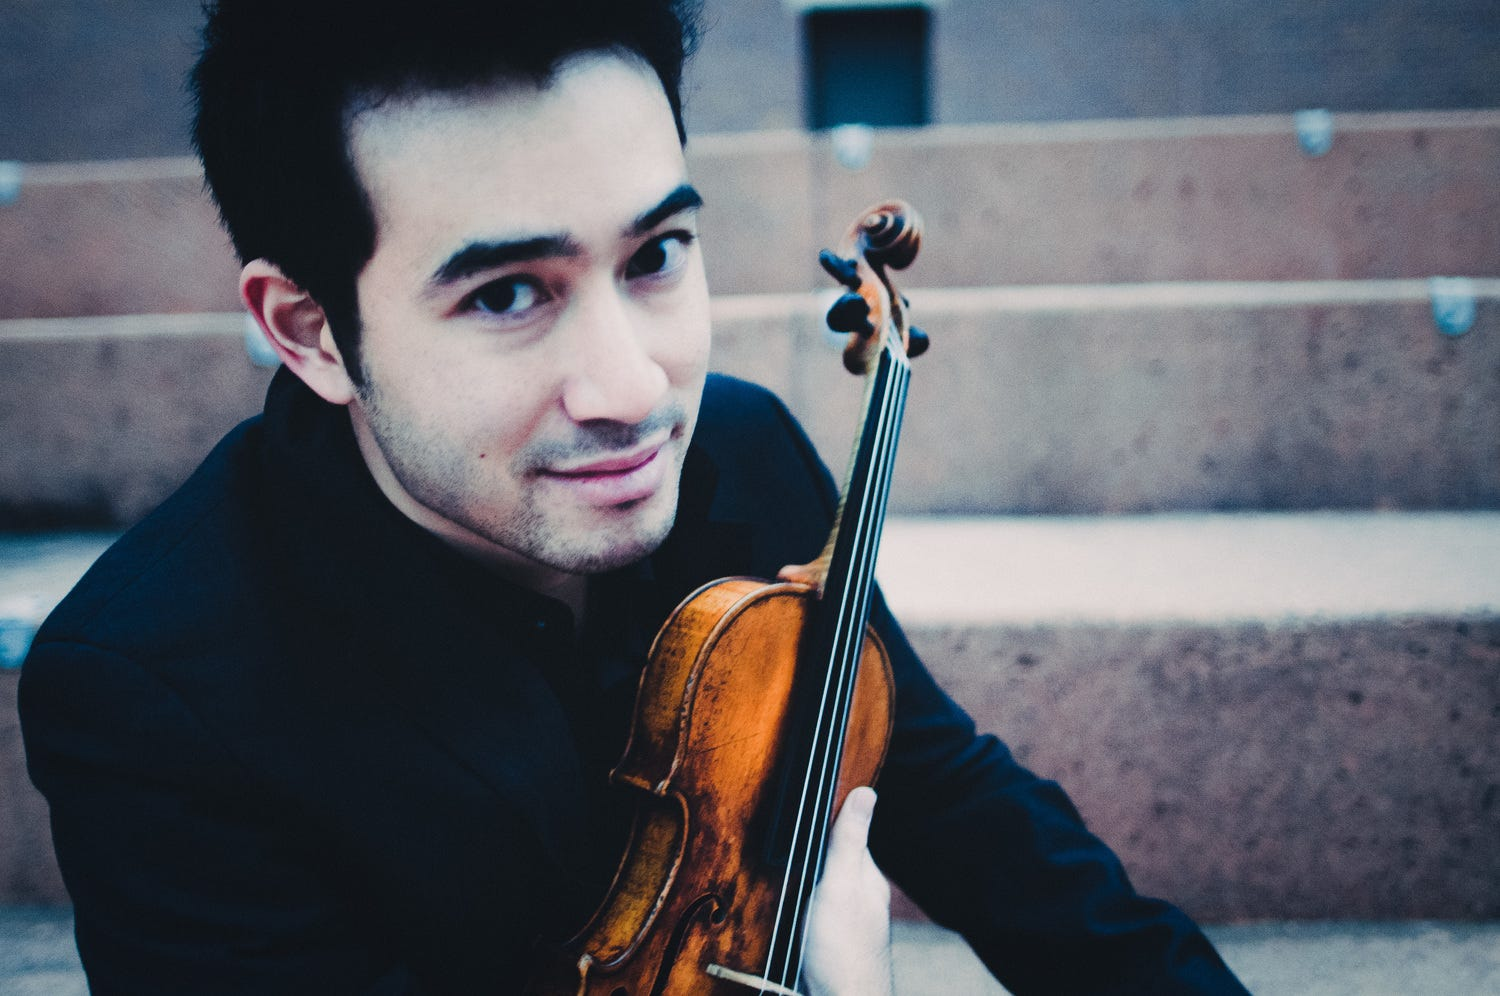 636620679097139250-Violinist-Suliman-Tekalli May 23-29: Concerts, art exhibits and summer camps at FIT make this week's list of events